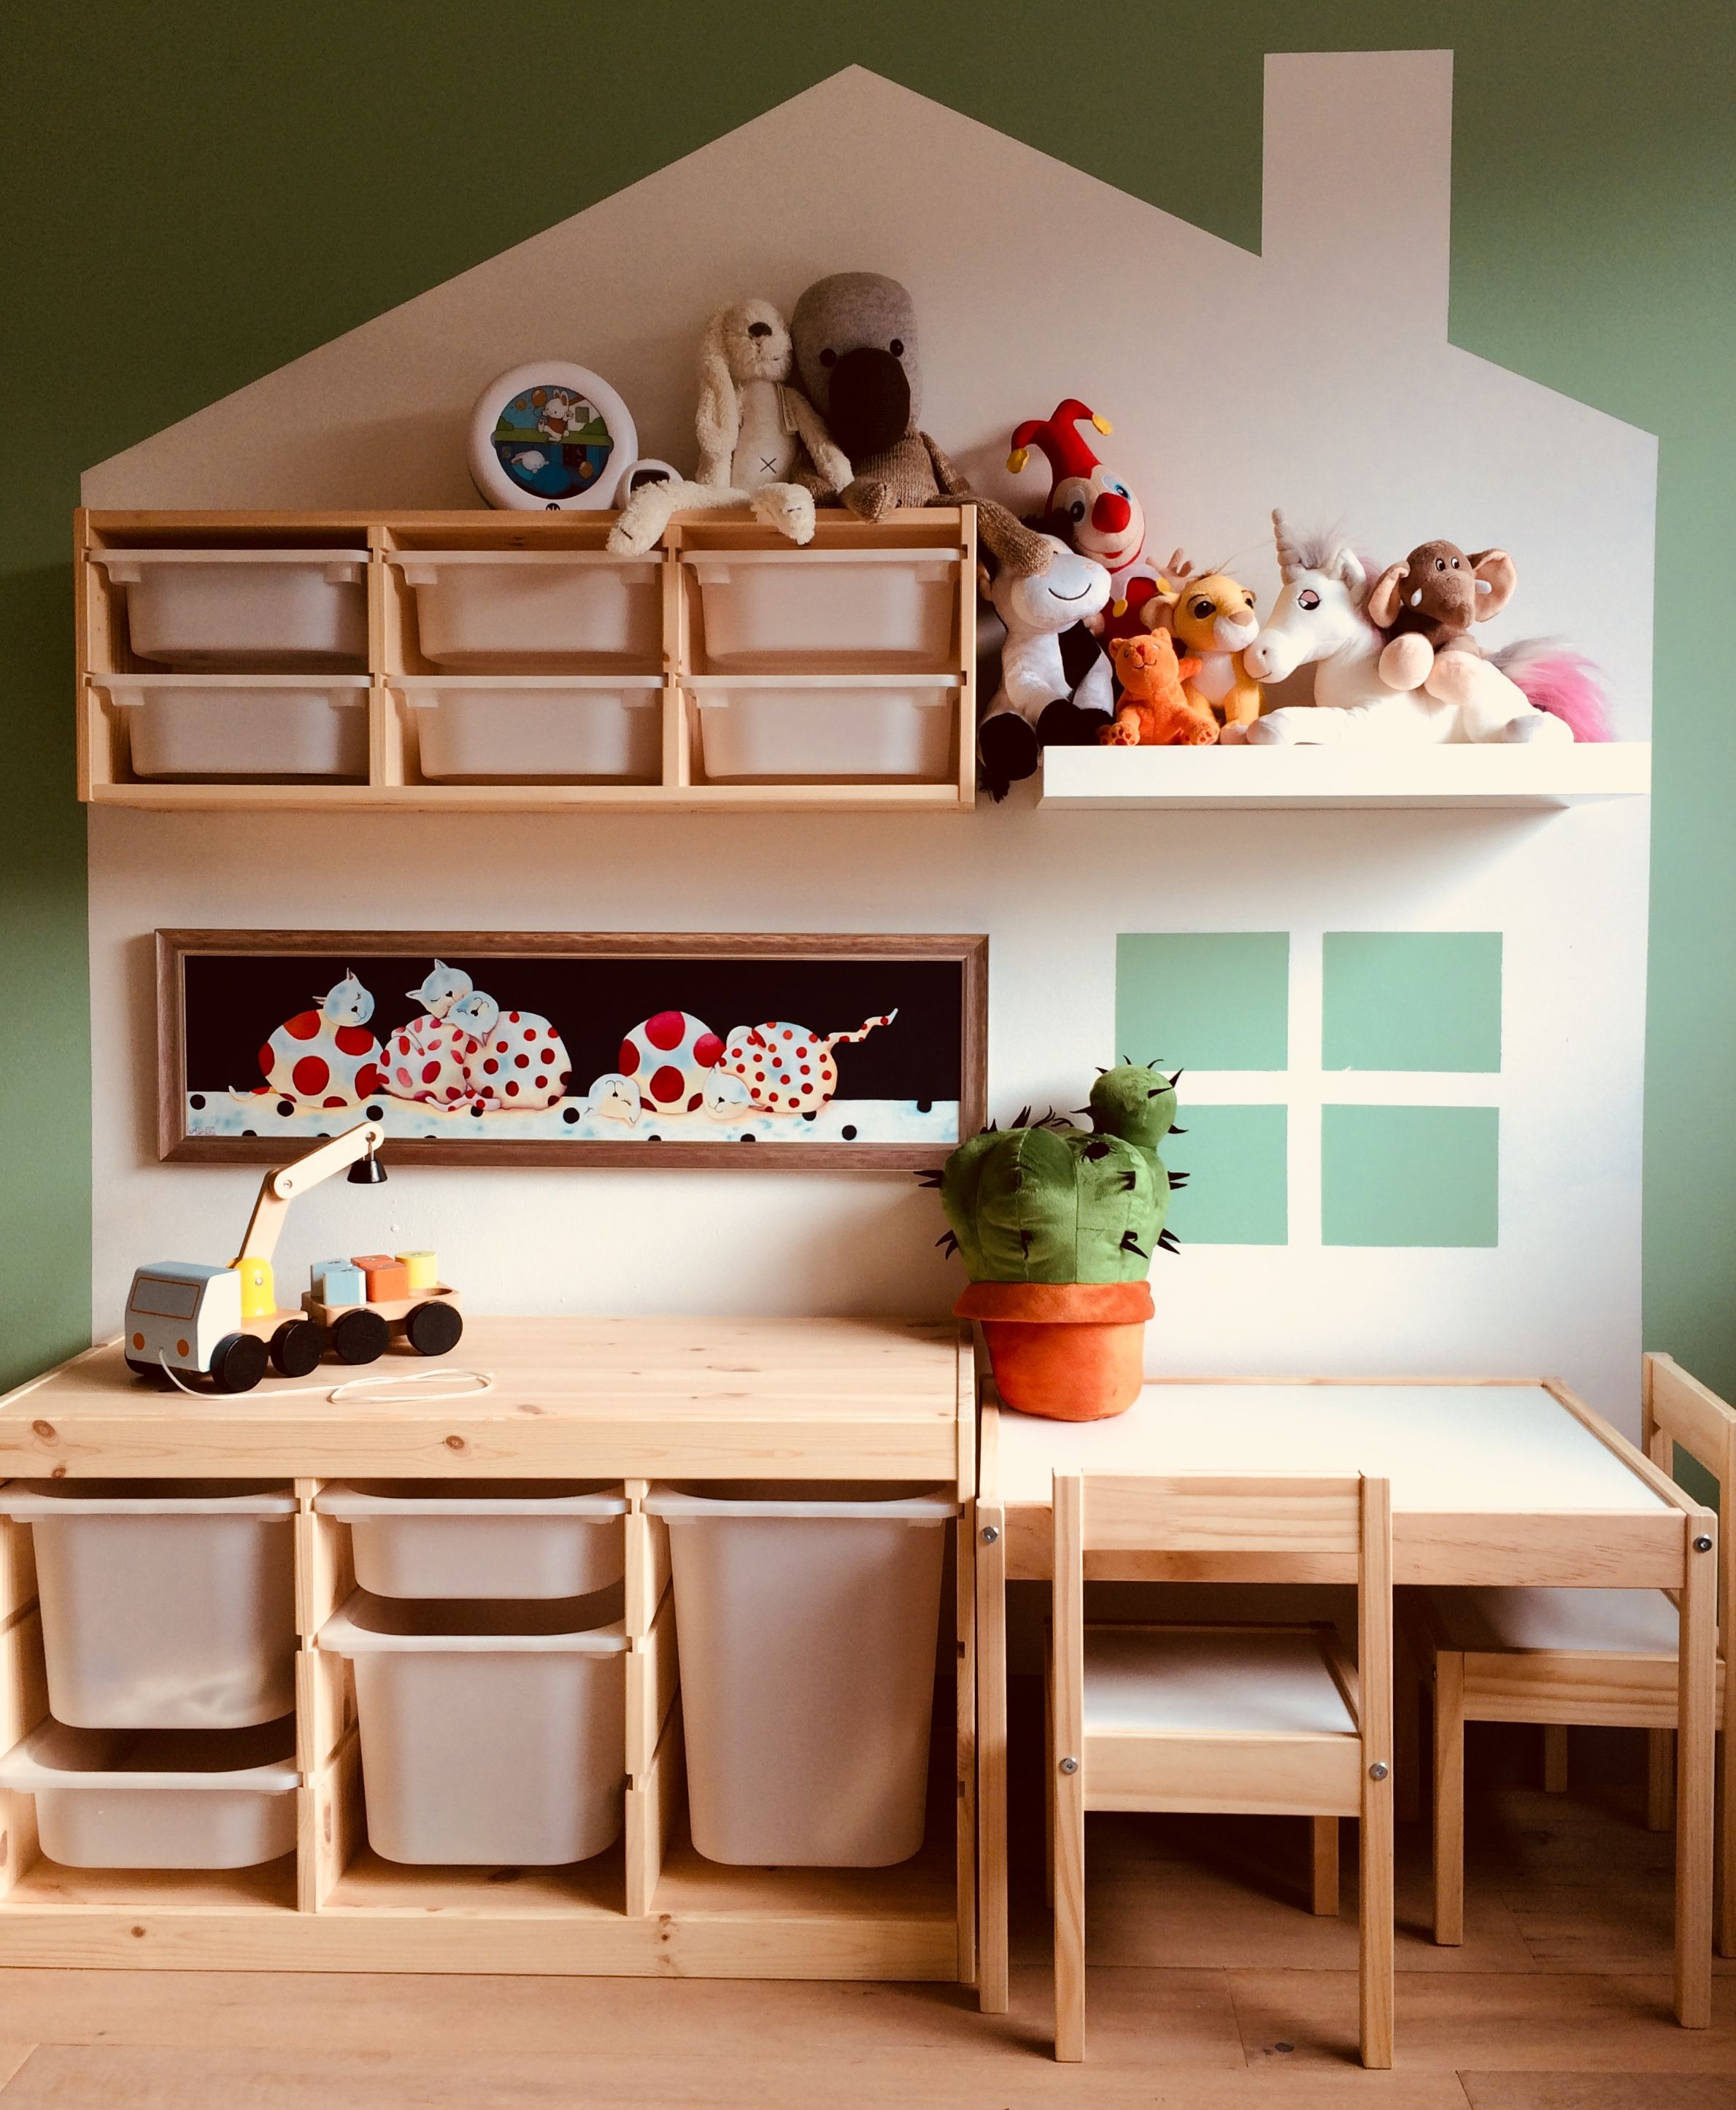 Trofast Ikea Küche Kidsroom With Ikea Trofast And Latt Ikea Hacks In 2019